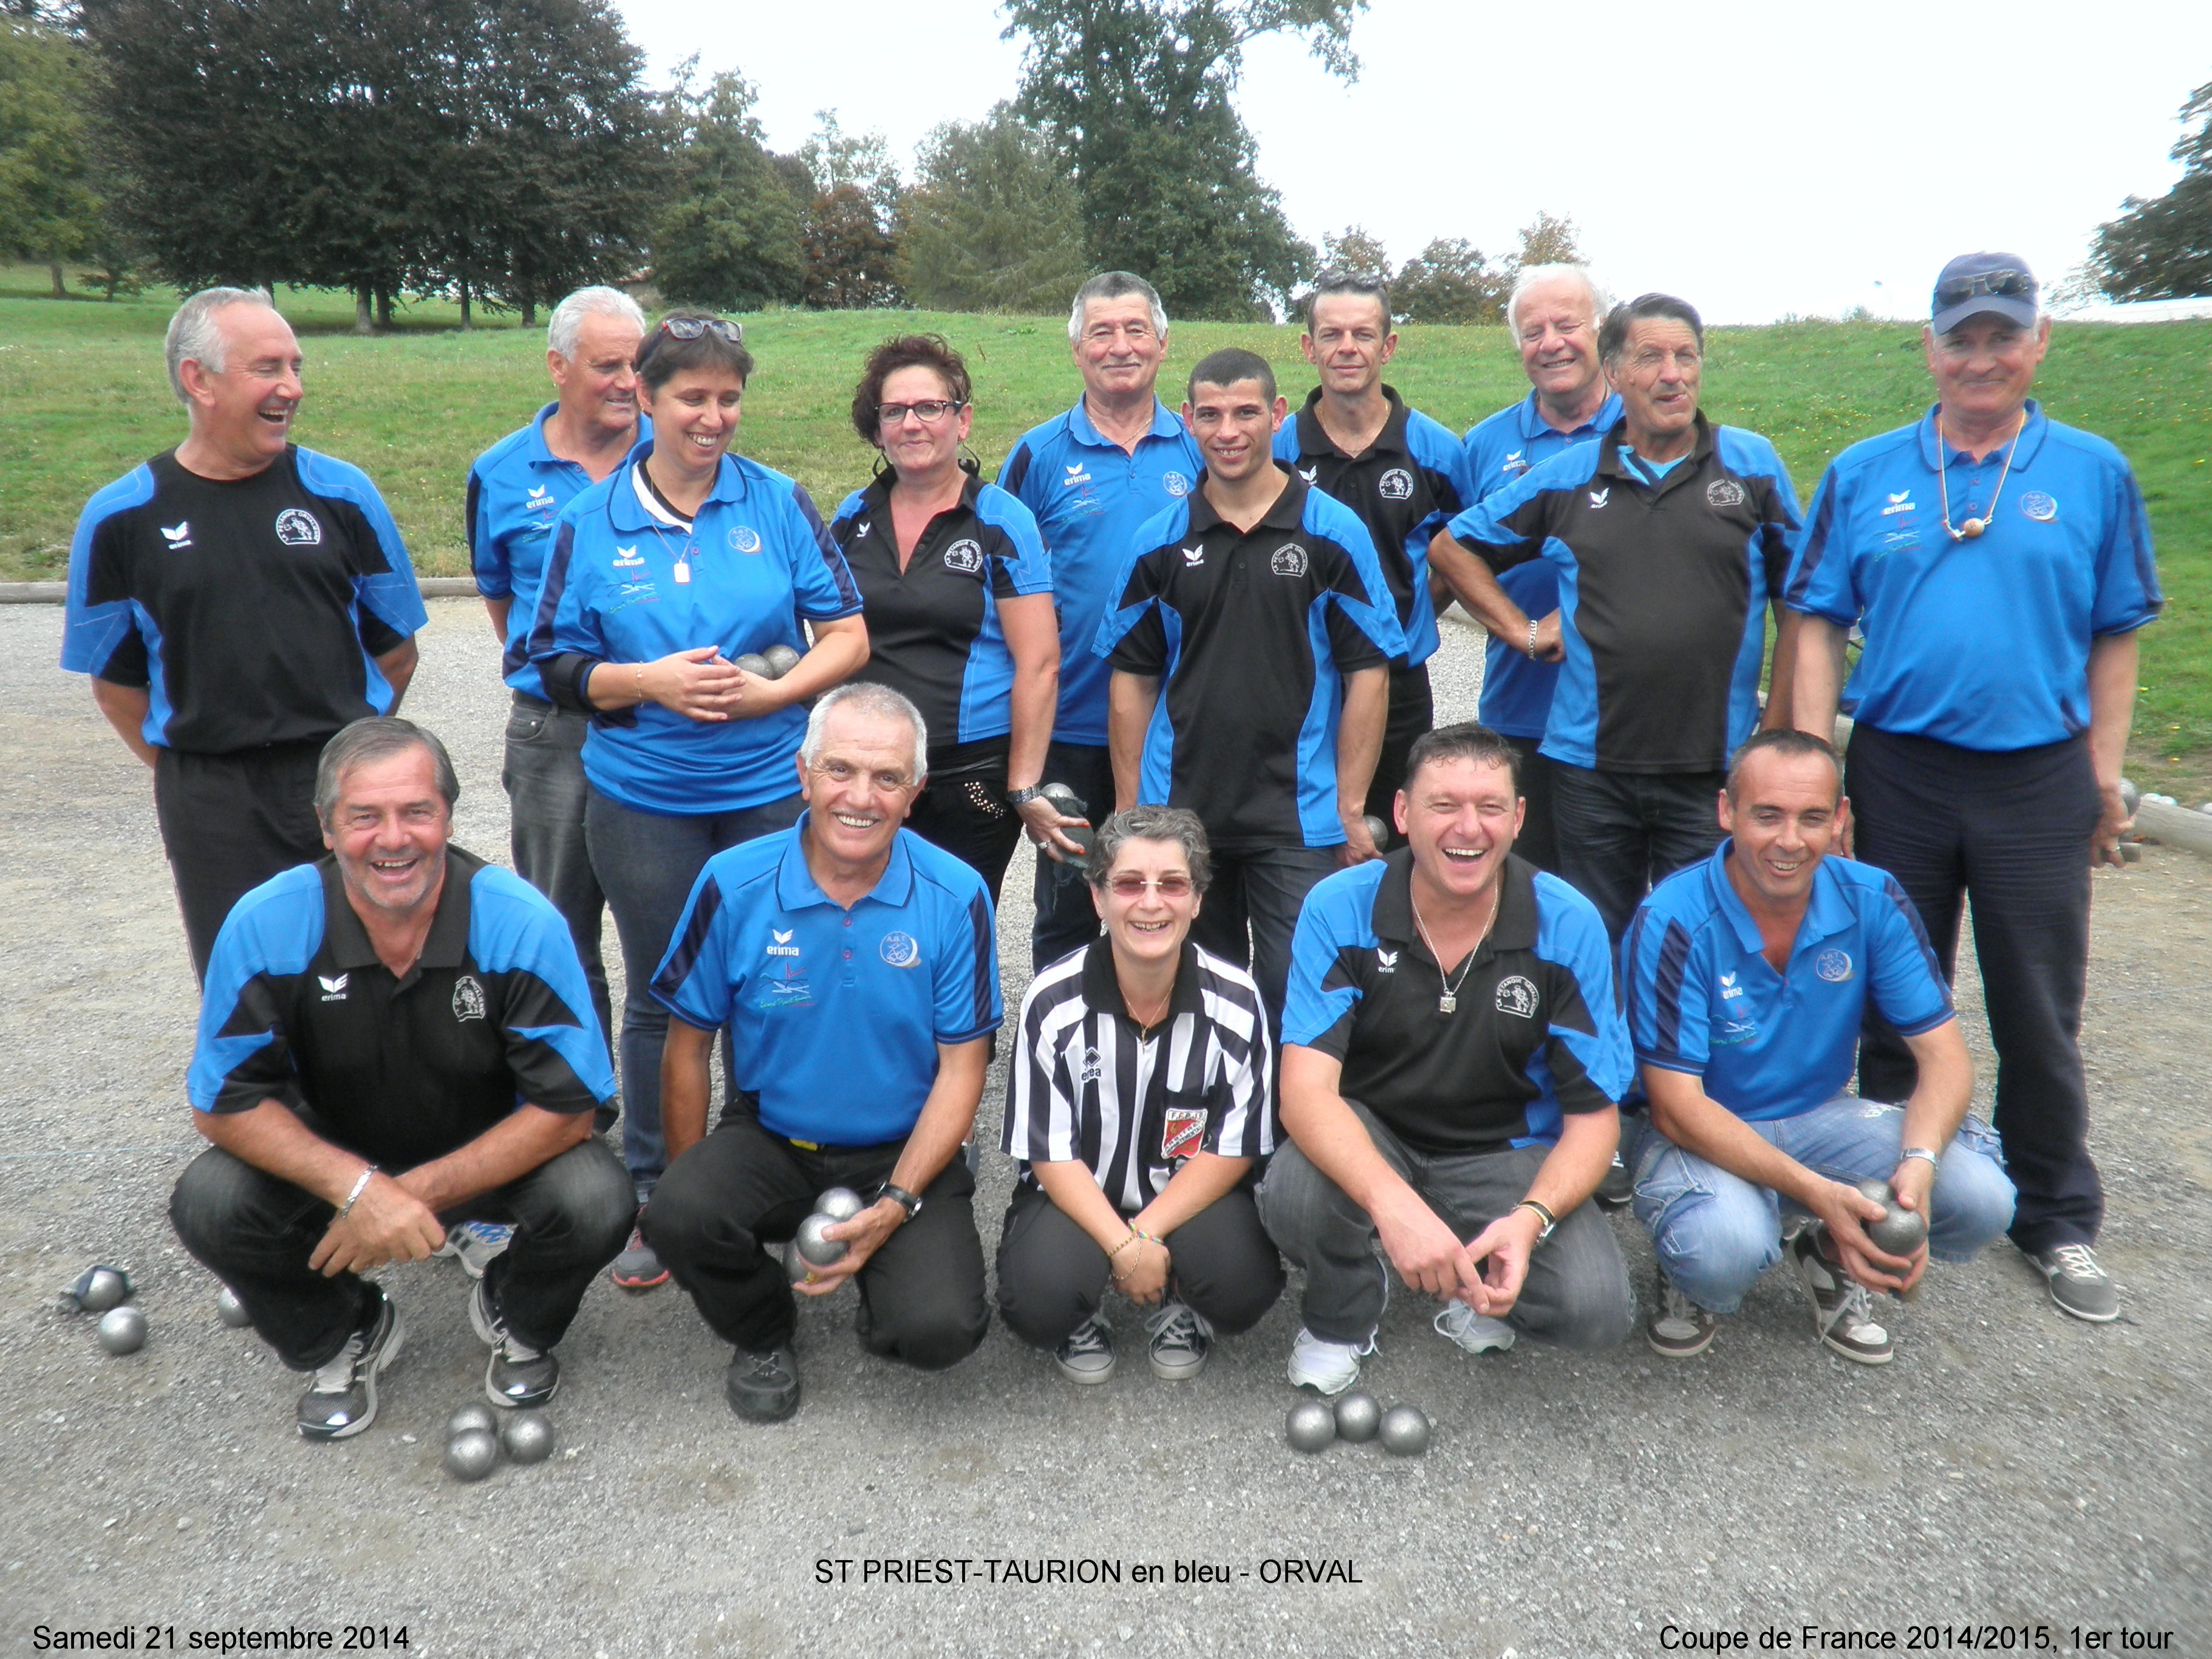 R sultat coupe de france st priest taurion orval - Resultat de coupe de france ...